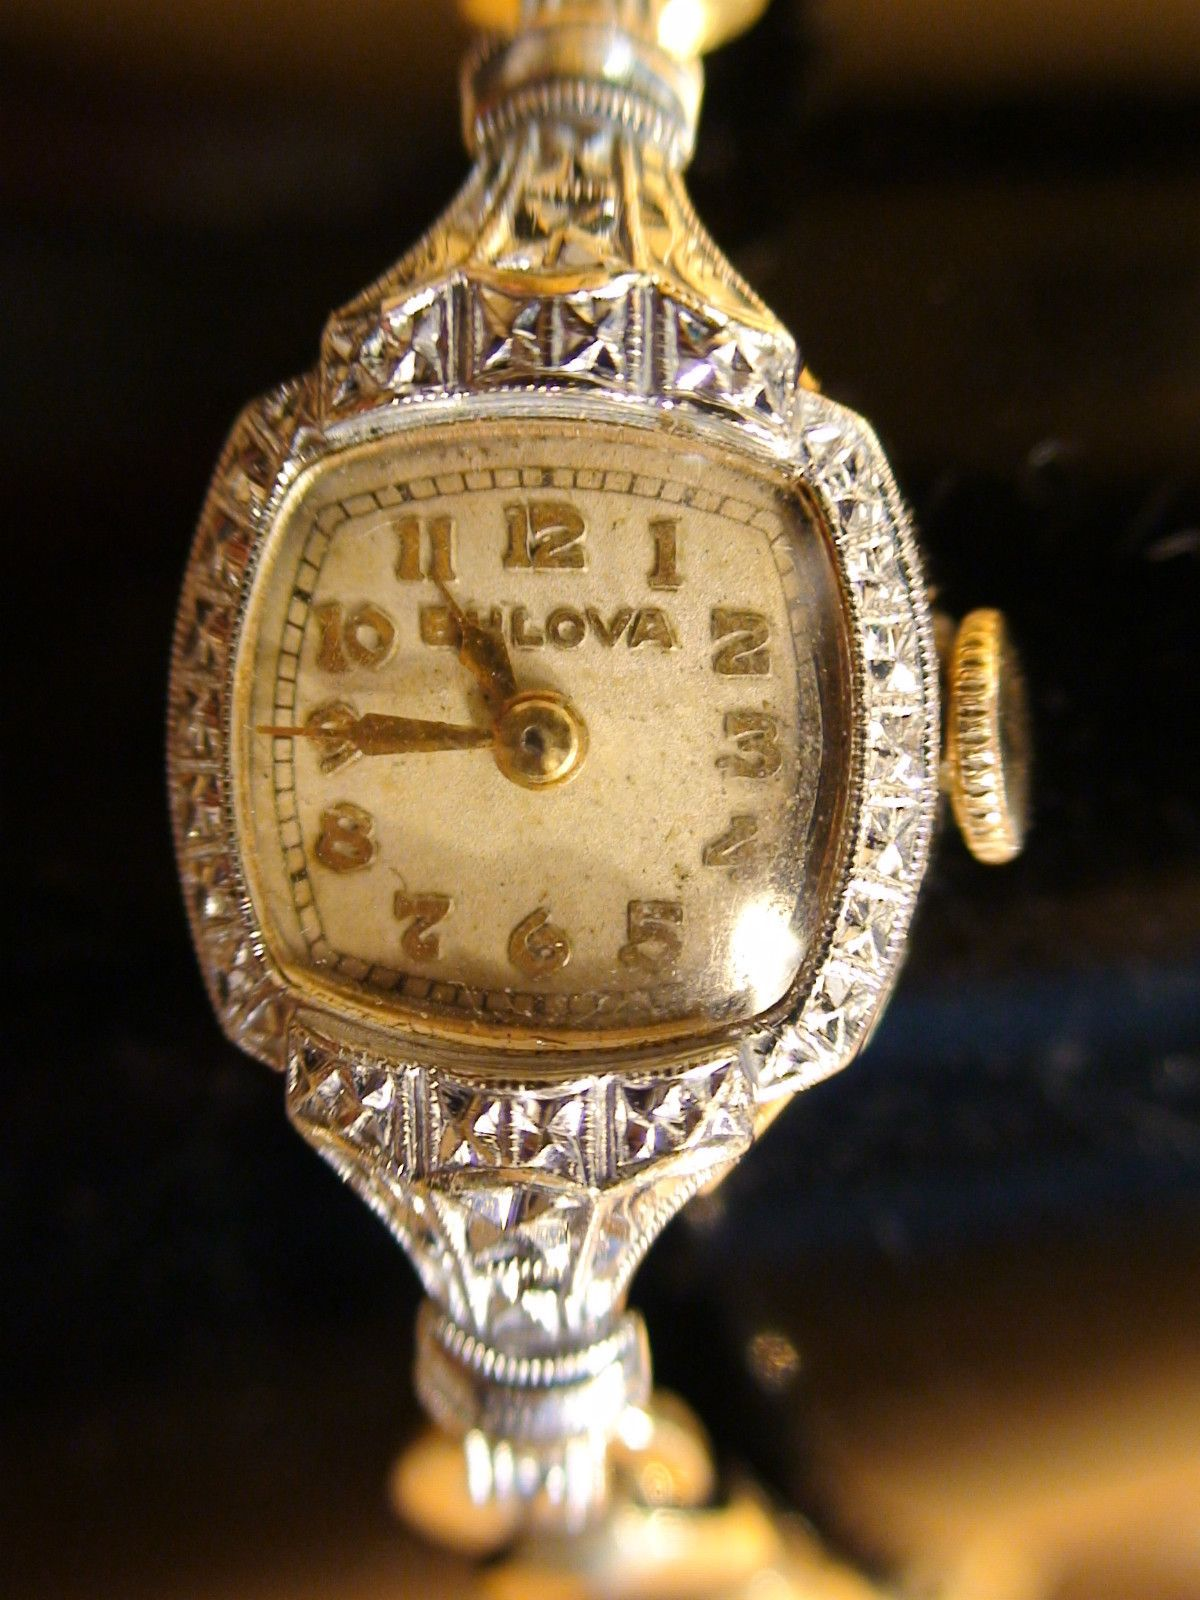 Beautiful Antique 1940s Bulova 10k Gold Fill Swiss Ladies Watch Serviced Works Vintage Watches Women Antique Watches Bulova